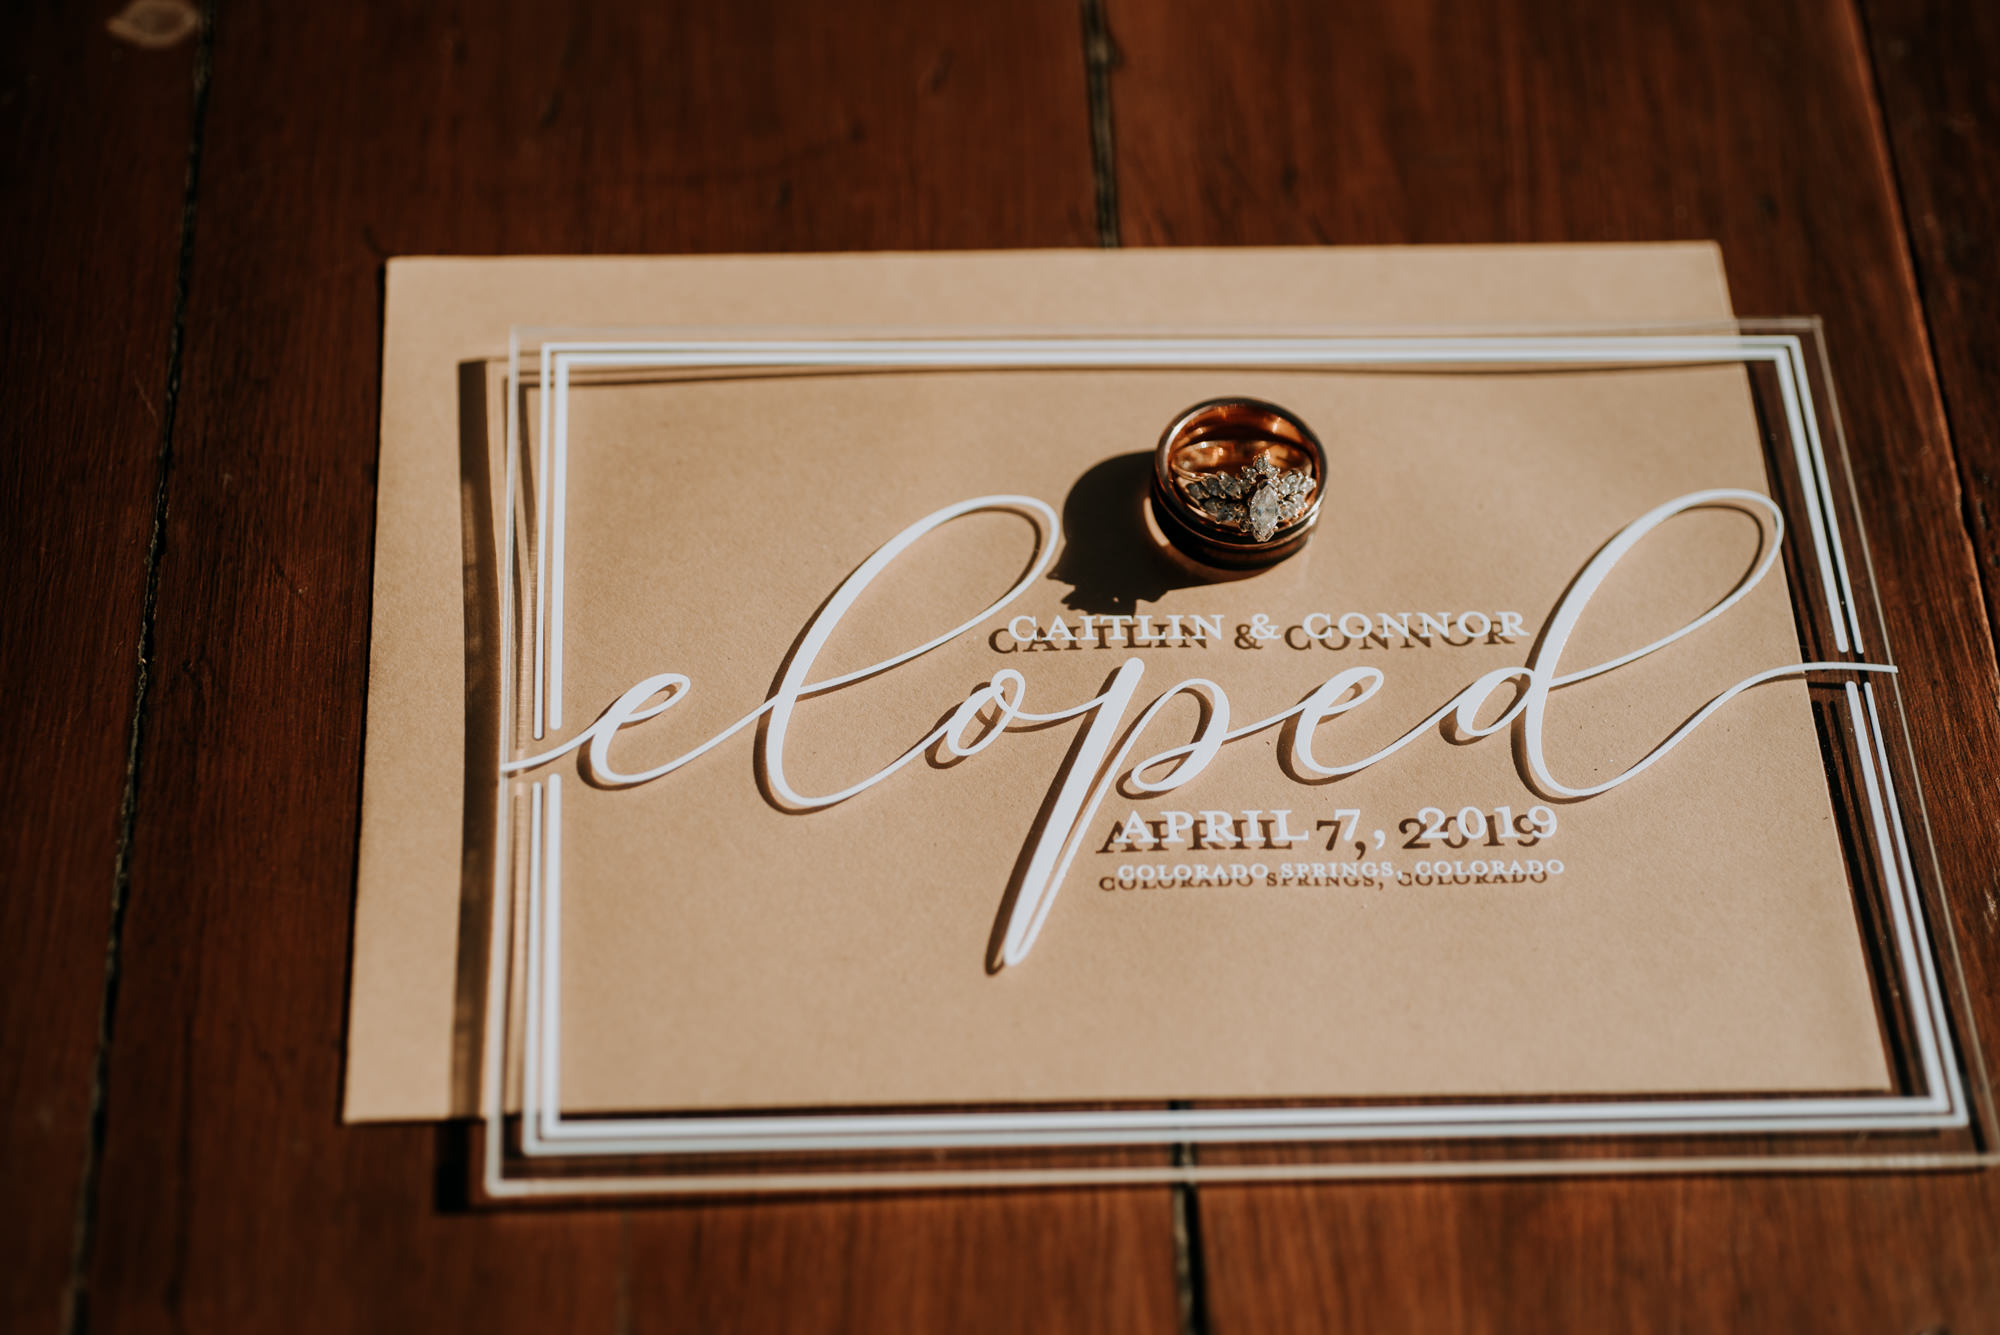 An elopement announcement in white script on a clear surface.